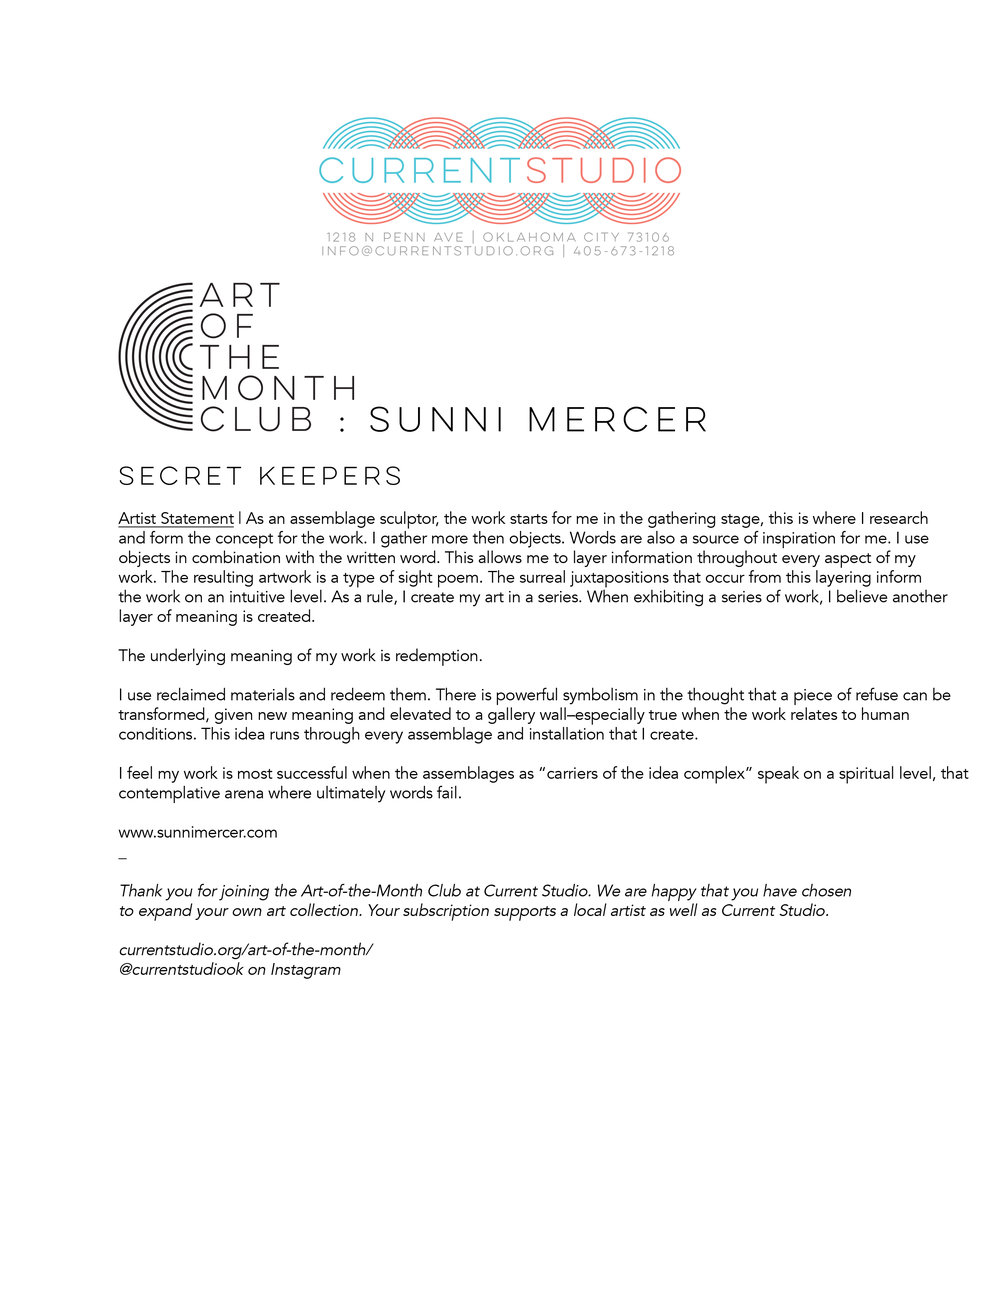 art of the month artist sheet - sunni mercer.jpg